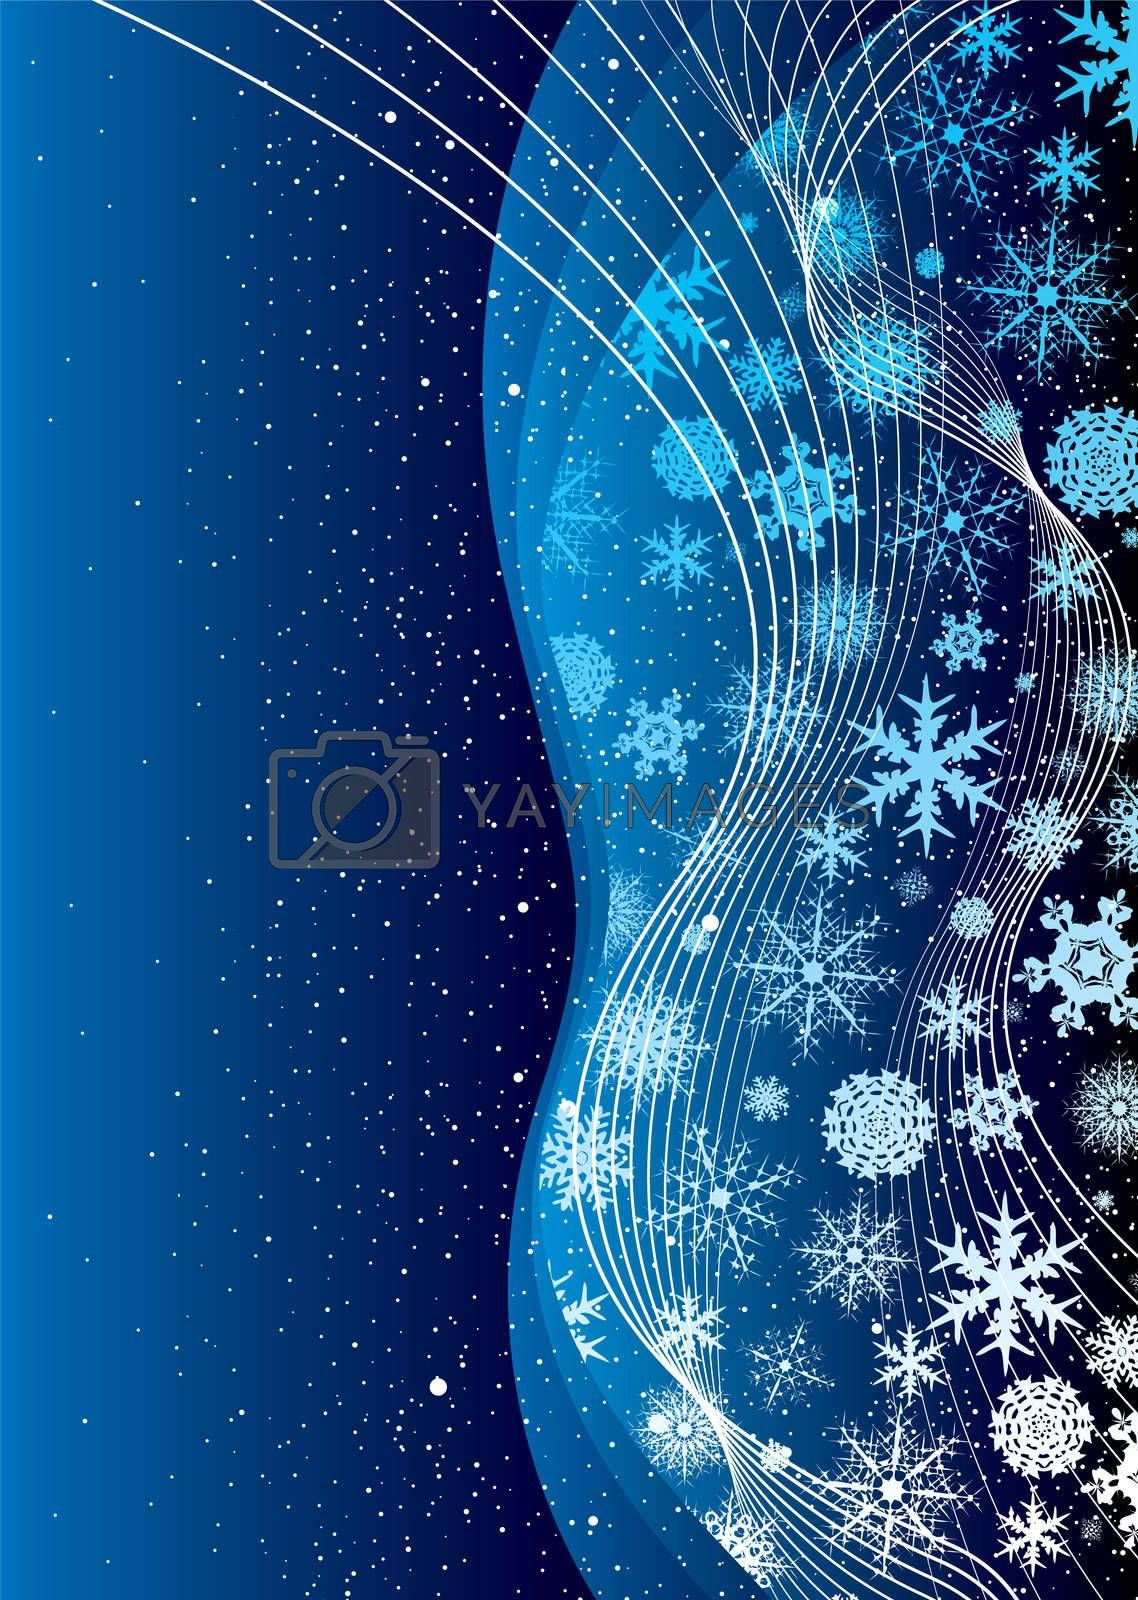 shades of blue abstract christmas background with snow flakes